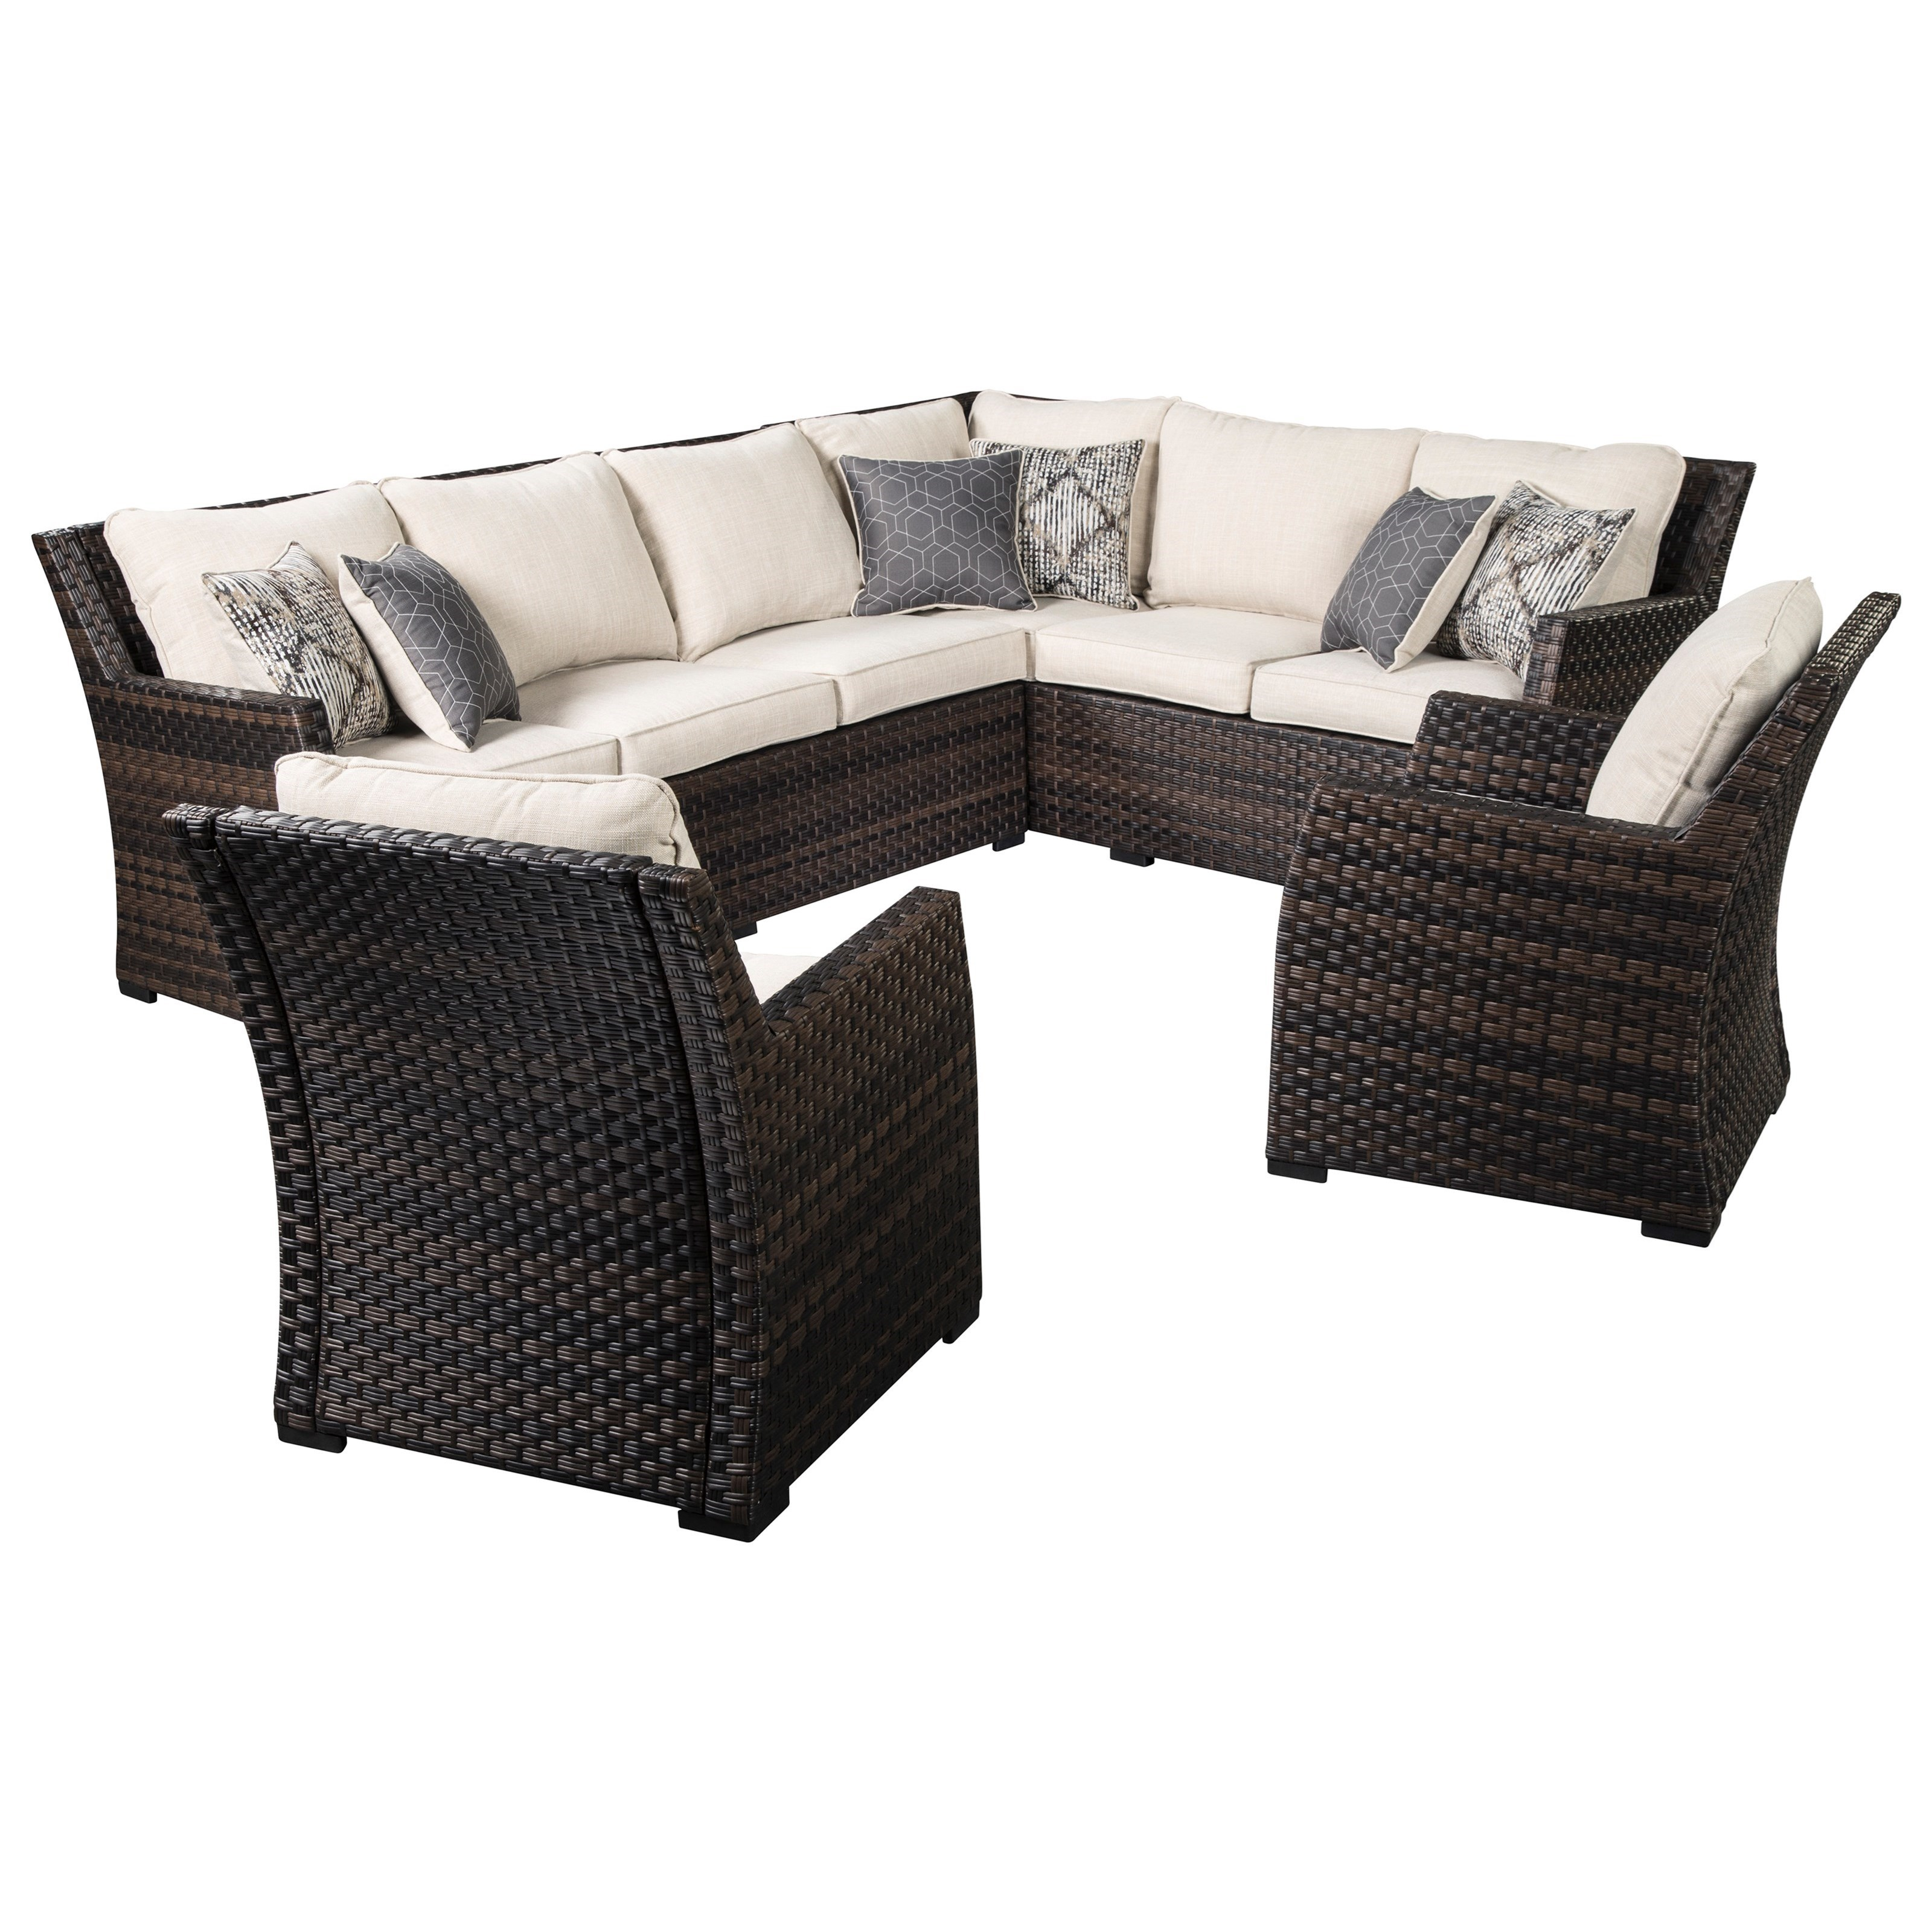 Easy Isle Outdoor 2-Piece Sectional & 2 Lounge Chairs by Signature Design by Ashley at Northeast Factory Direct